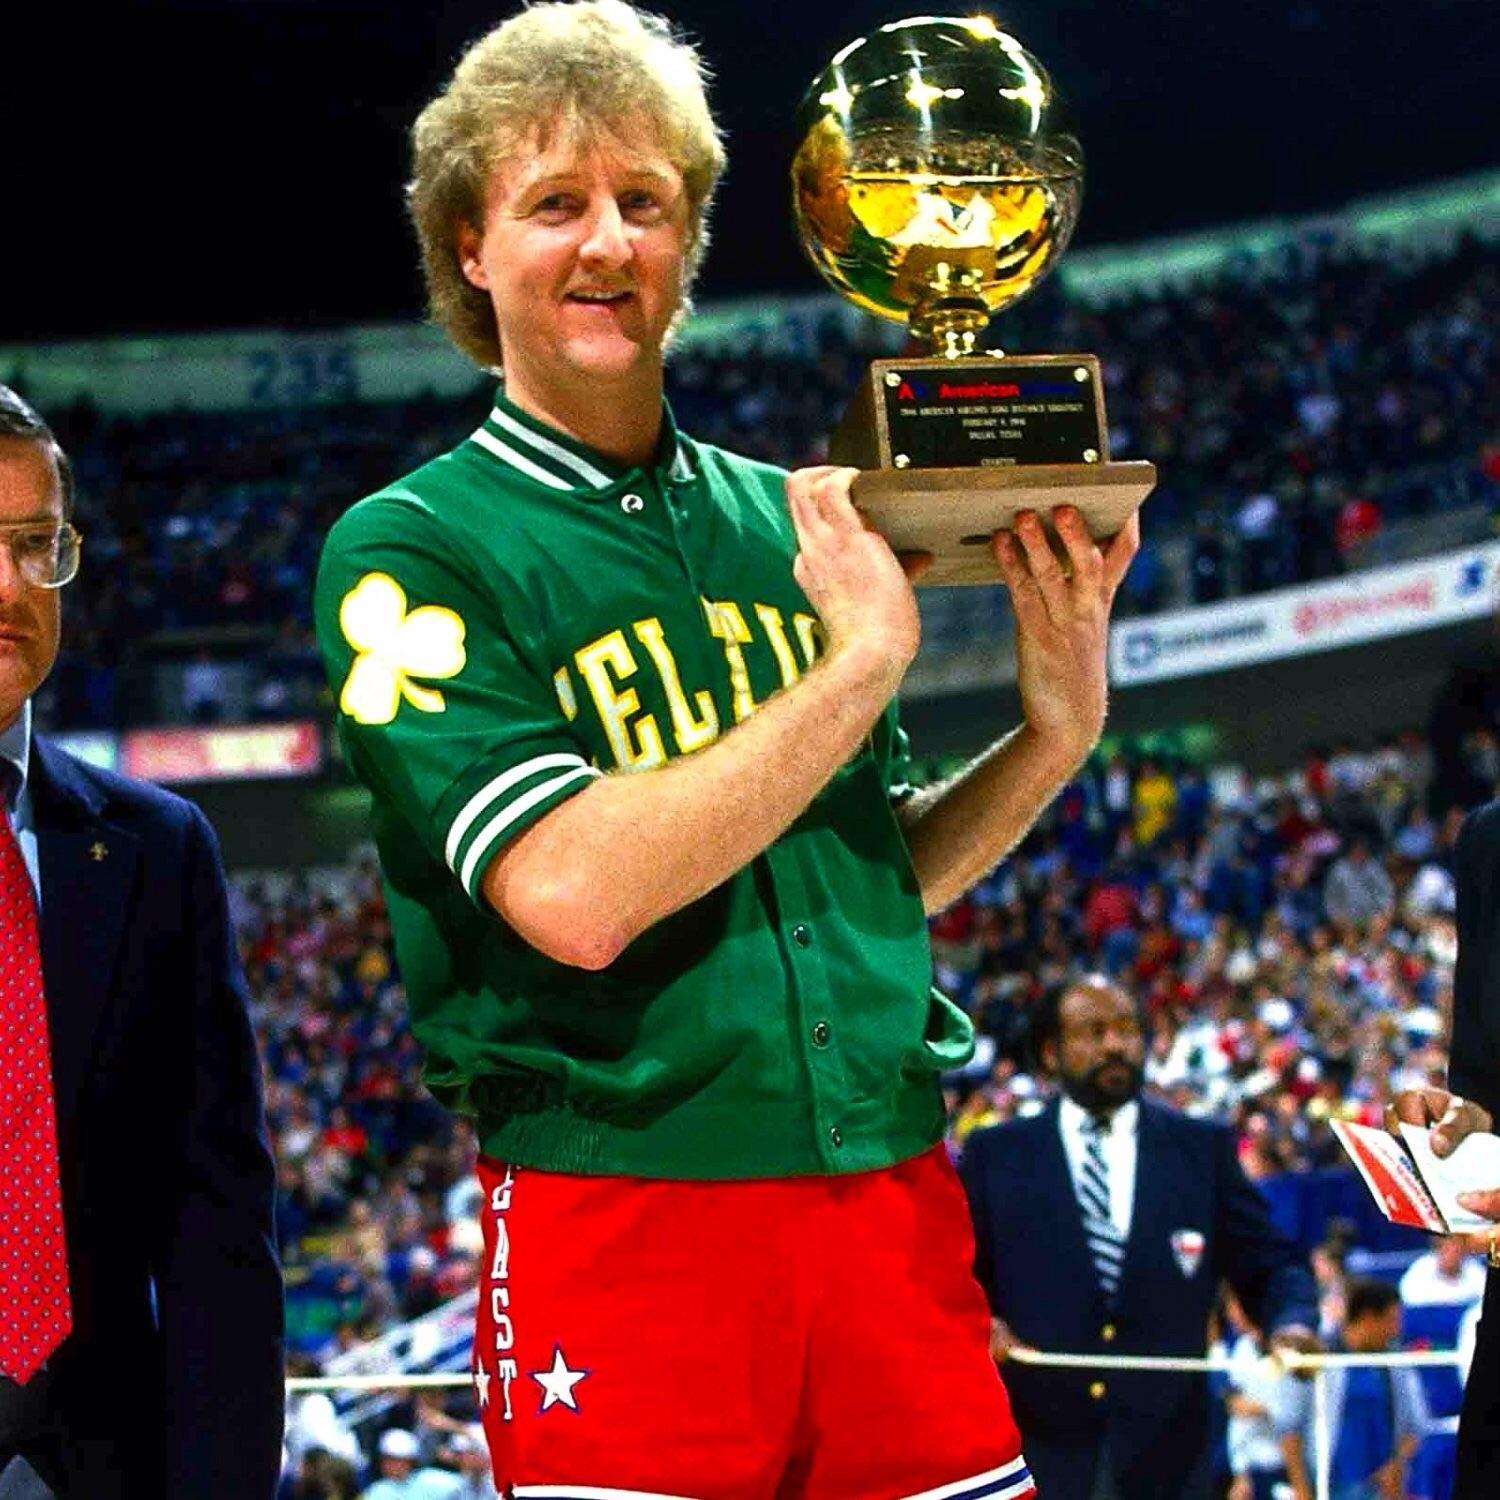 The three-point shootout of 1987 saw Larry Bird and what Celtics player go head-to-head for a chance to win $86,000!